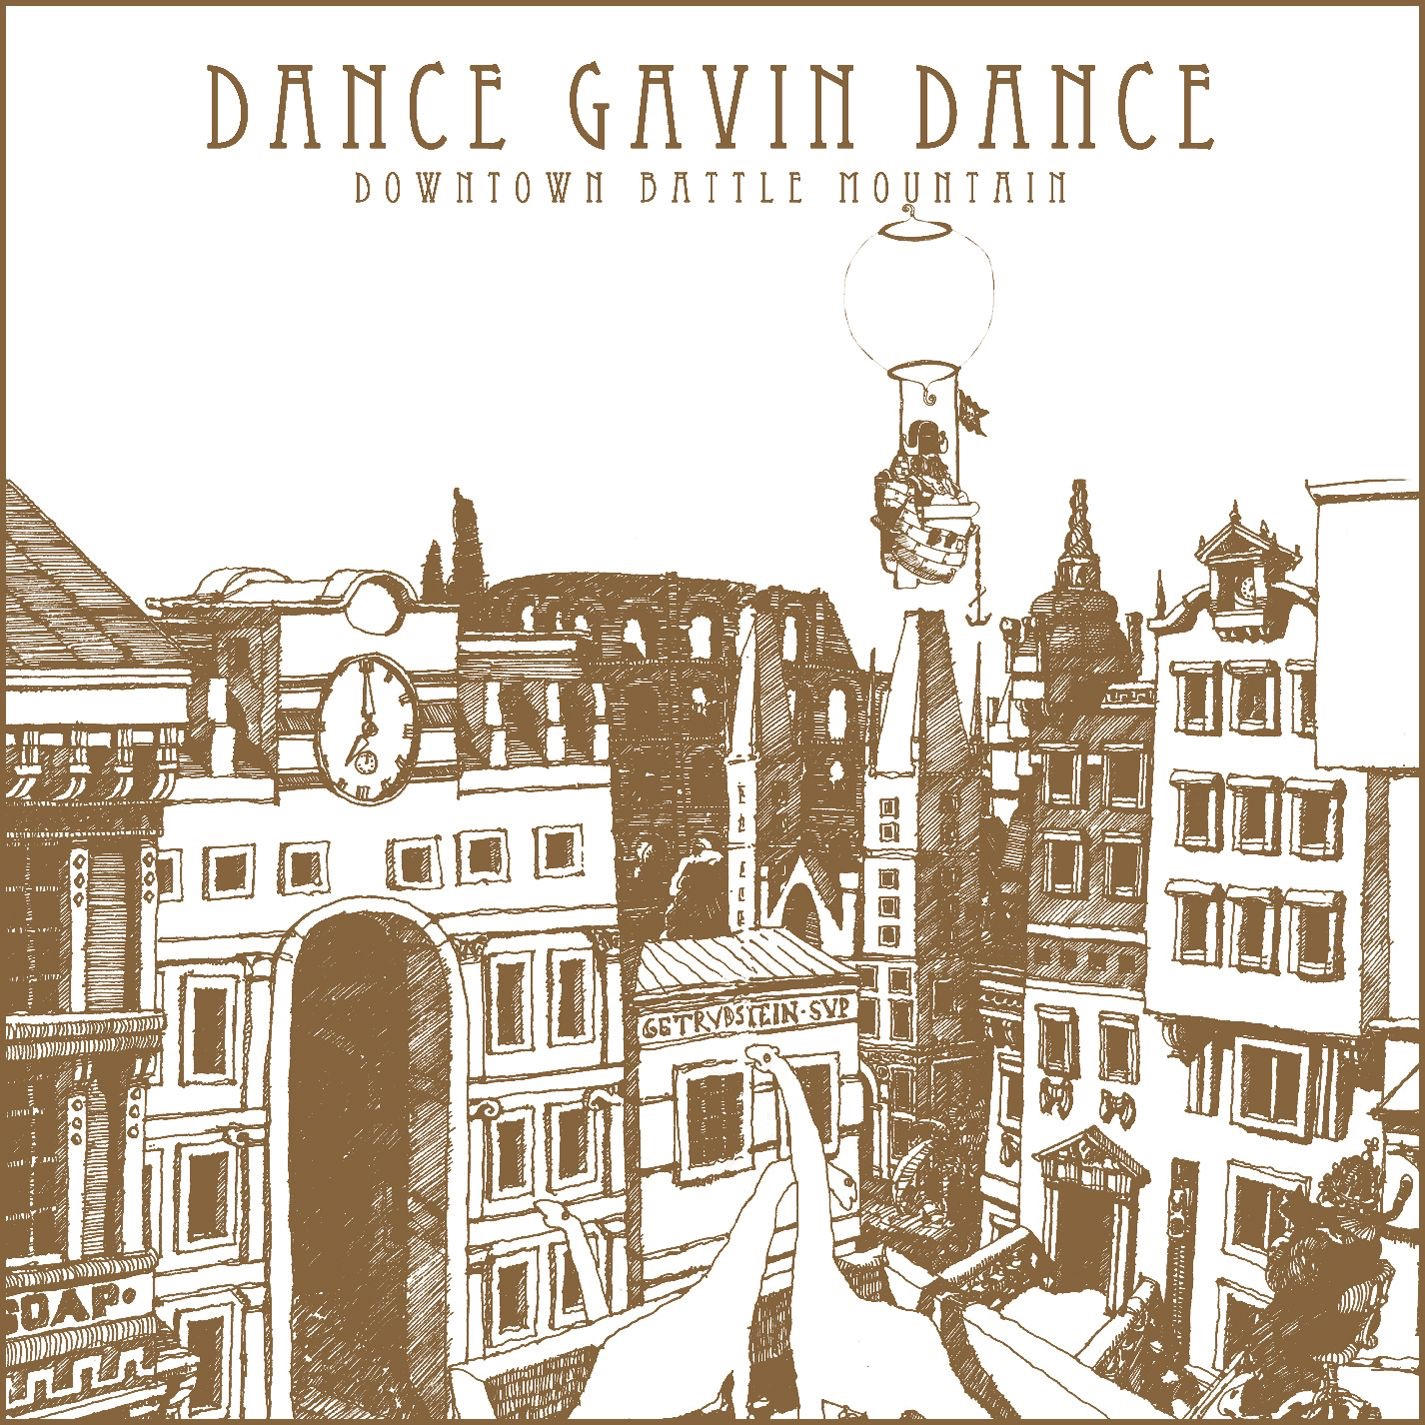 battle mountain dating Volatile post-hardcore outfit dance gavin dance deliver thrashing,  downtown battle mountain,  which featured the singles chucky vs.